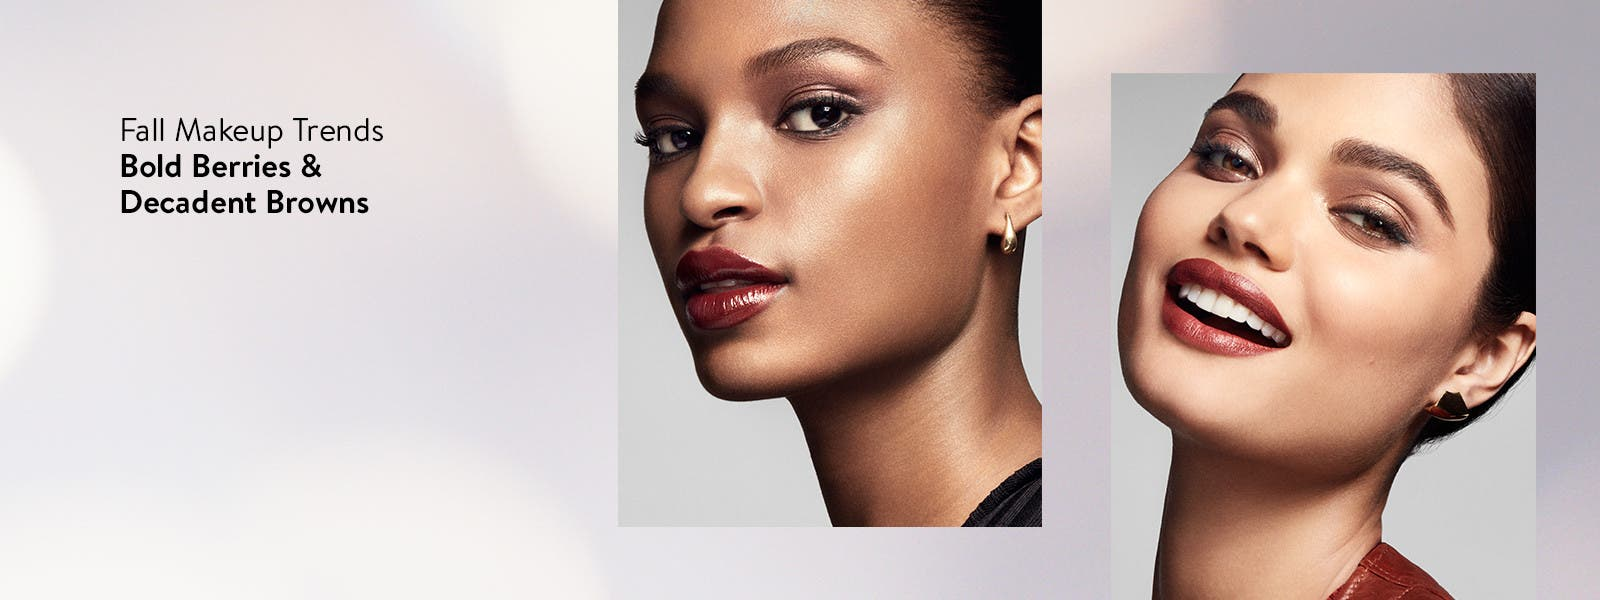 Fall makeup trends: bold berries and decadent browns.